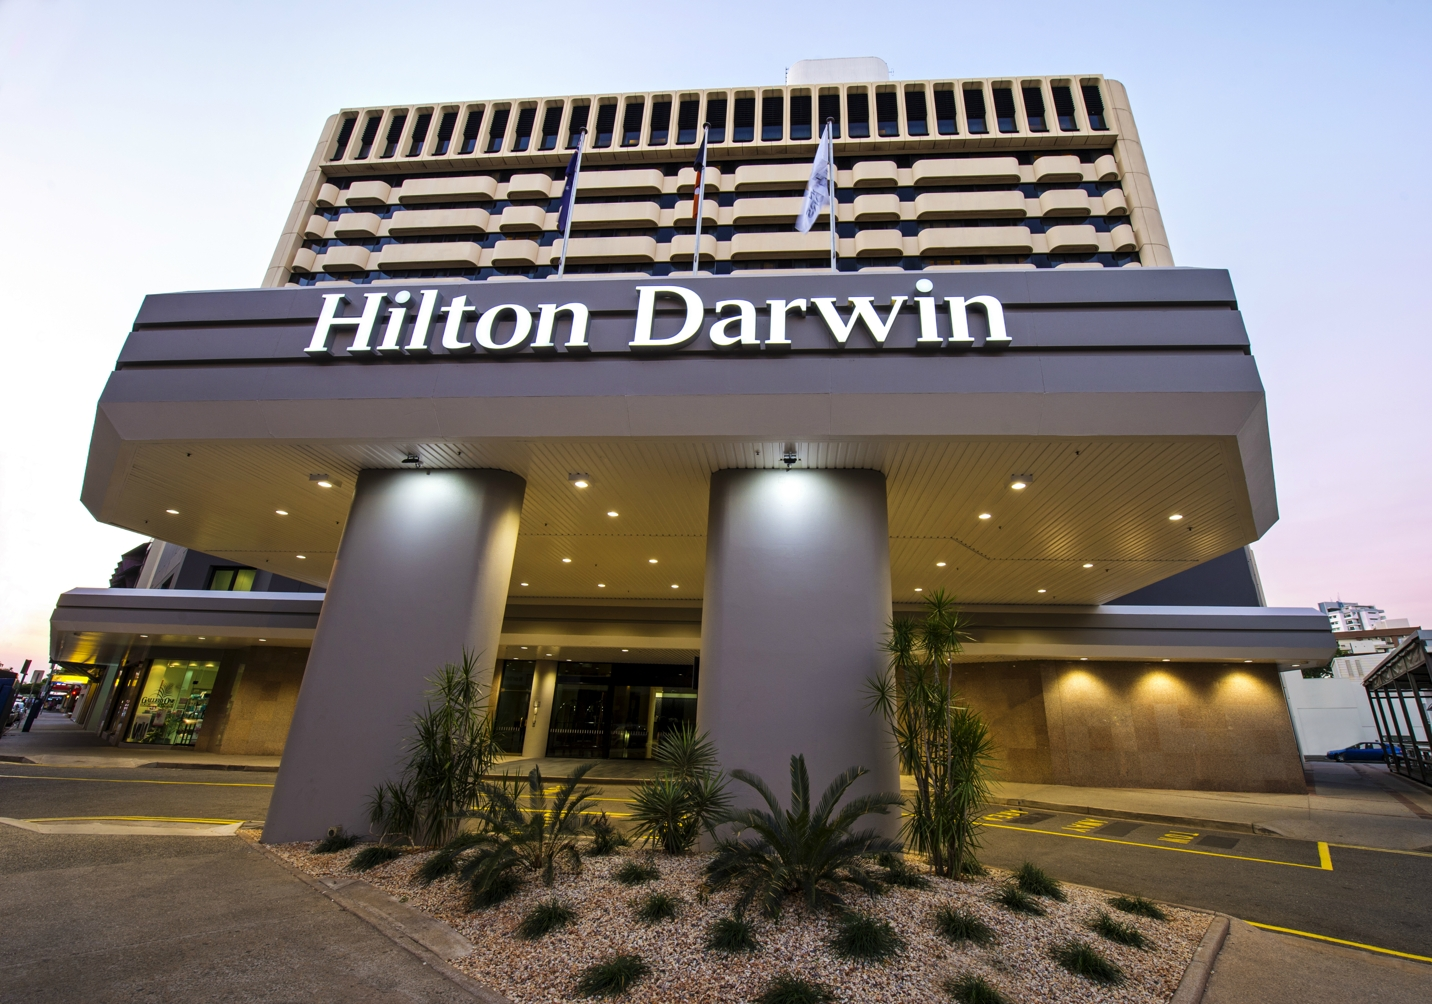 https://bubo.sk/uploads/galleries/5028/hilton-darwin.jpg